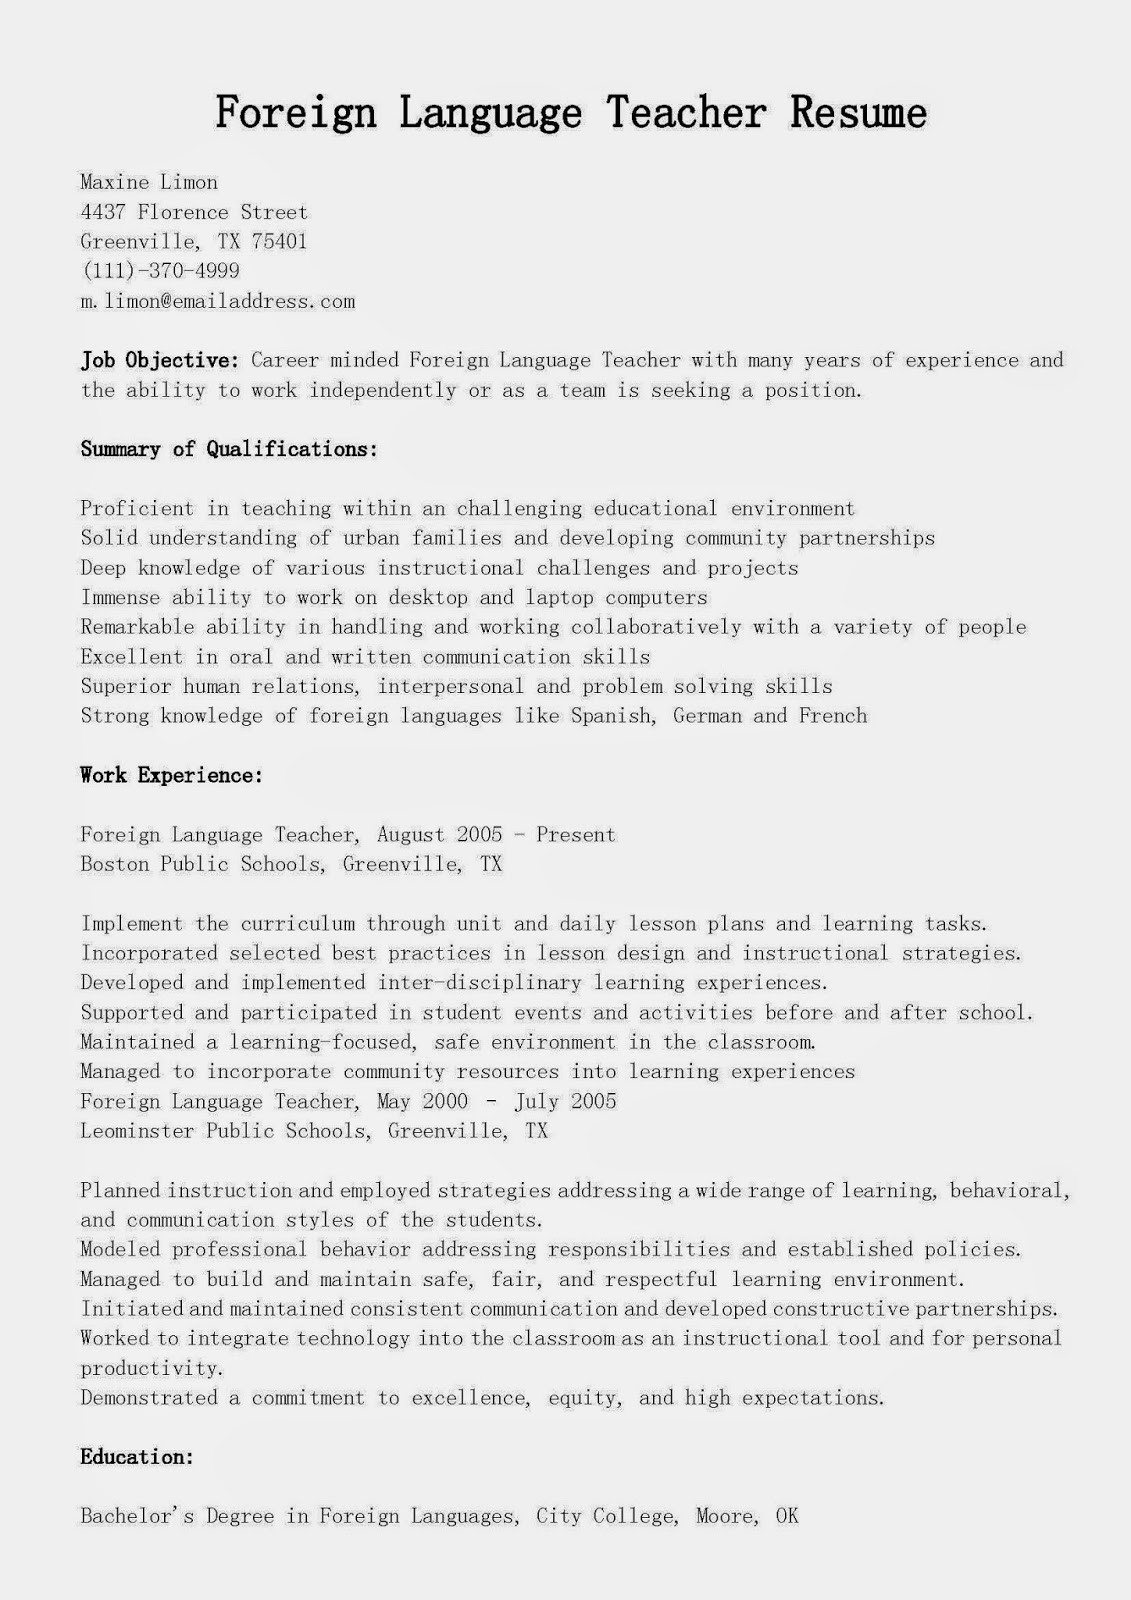 resume samples  foreign language teacher resume sample